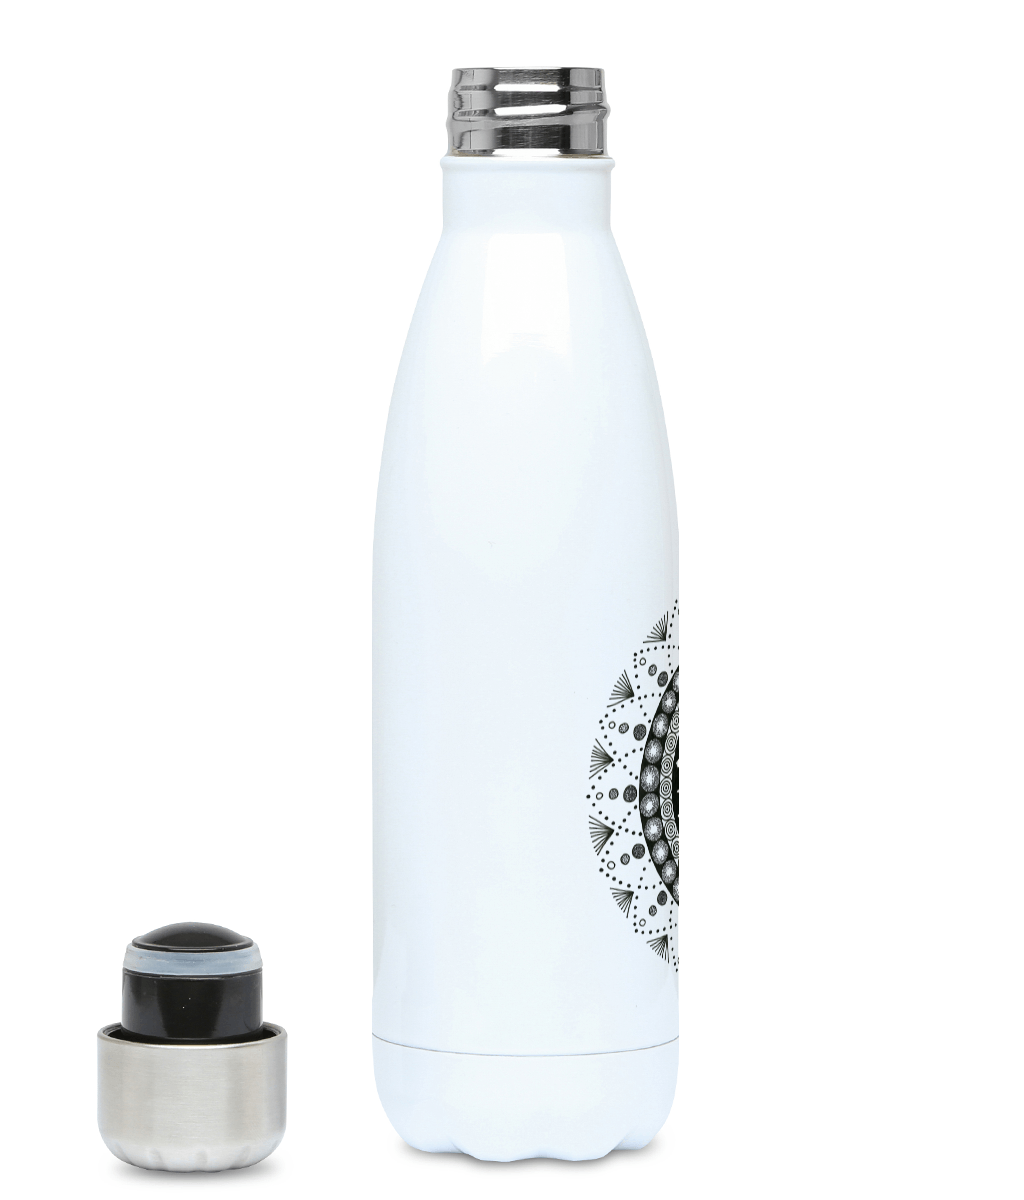 500ml Water Bottle 'Pisces' - Rebecca Leah Designs